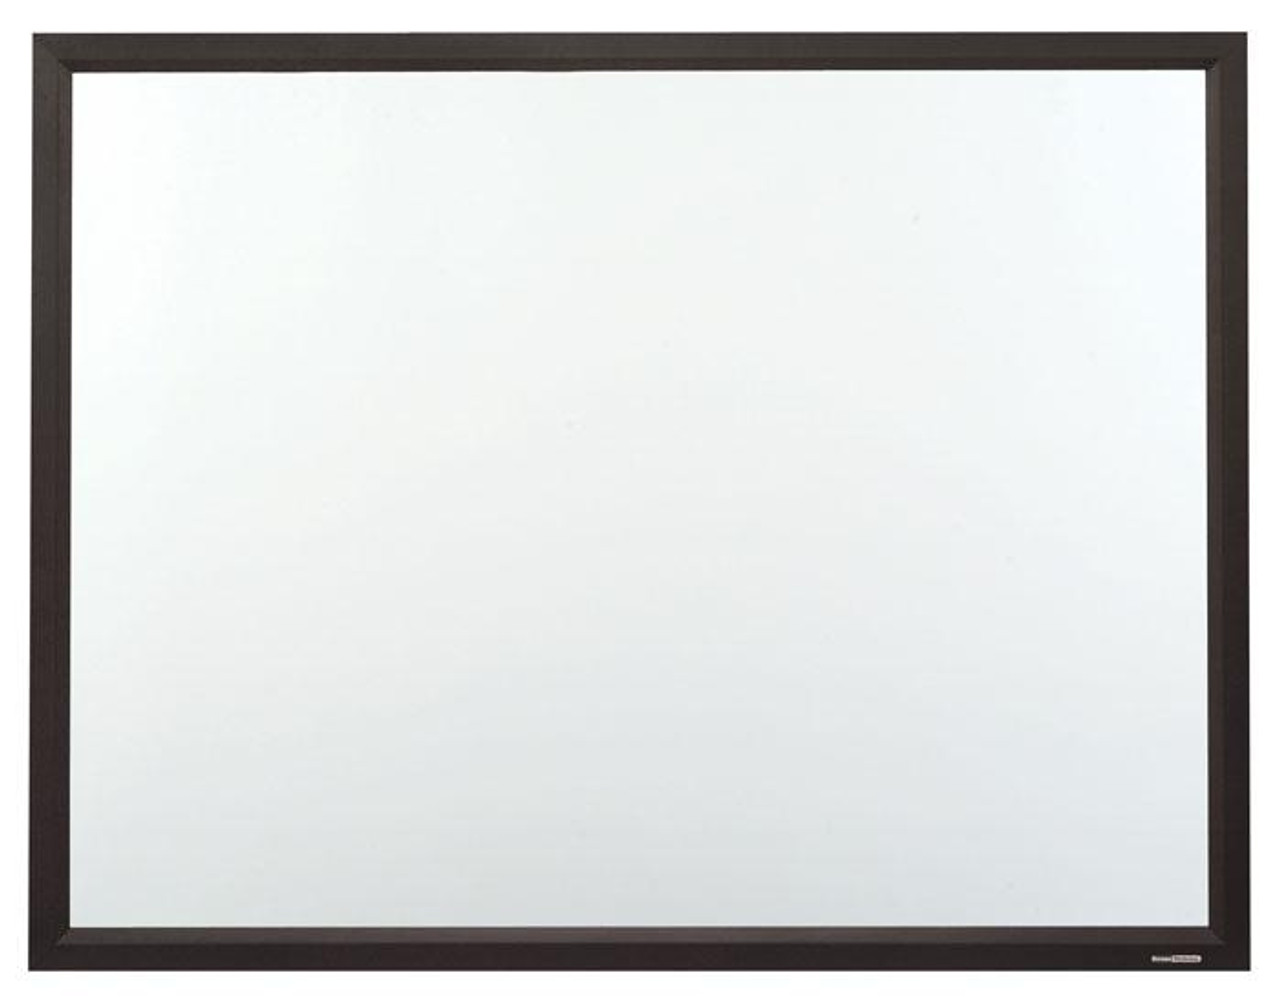 ST CinemaSnap Matt White Fixed Frame Projection Screens with Black Powdercoat Finish